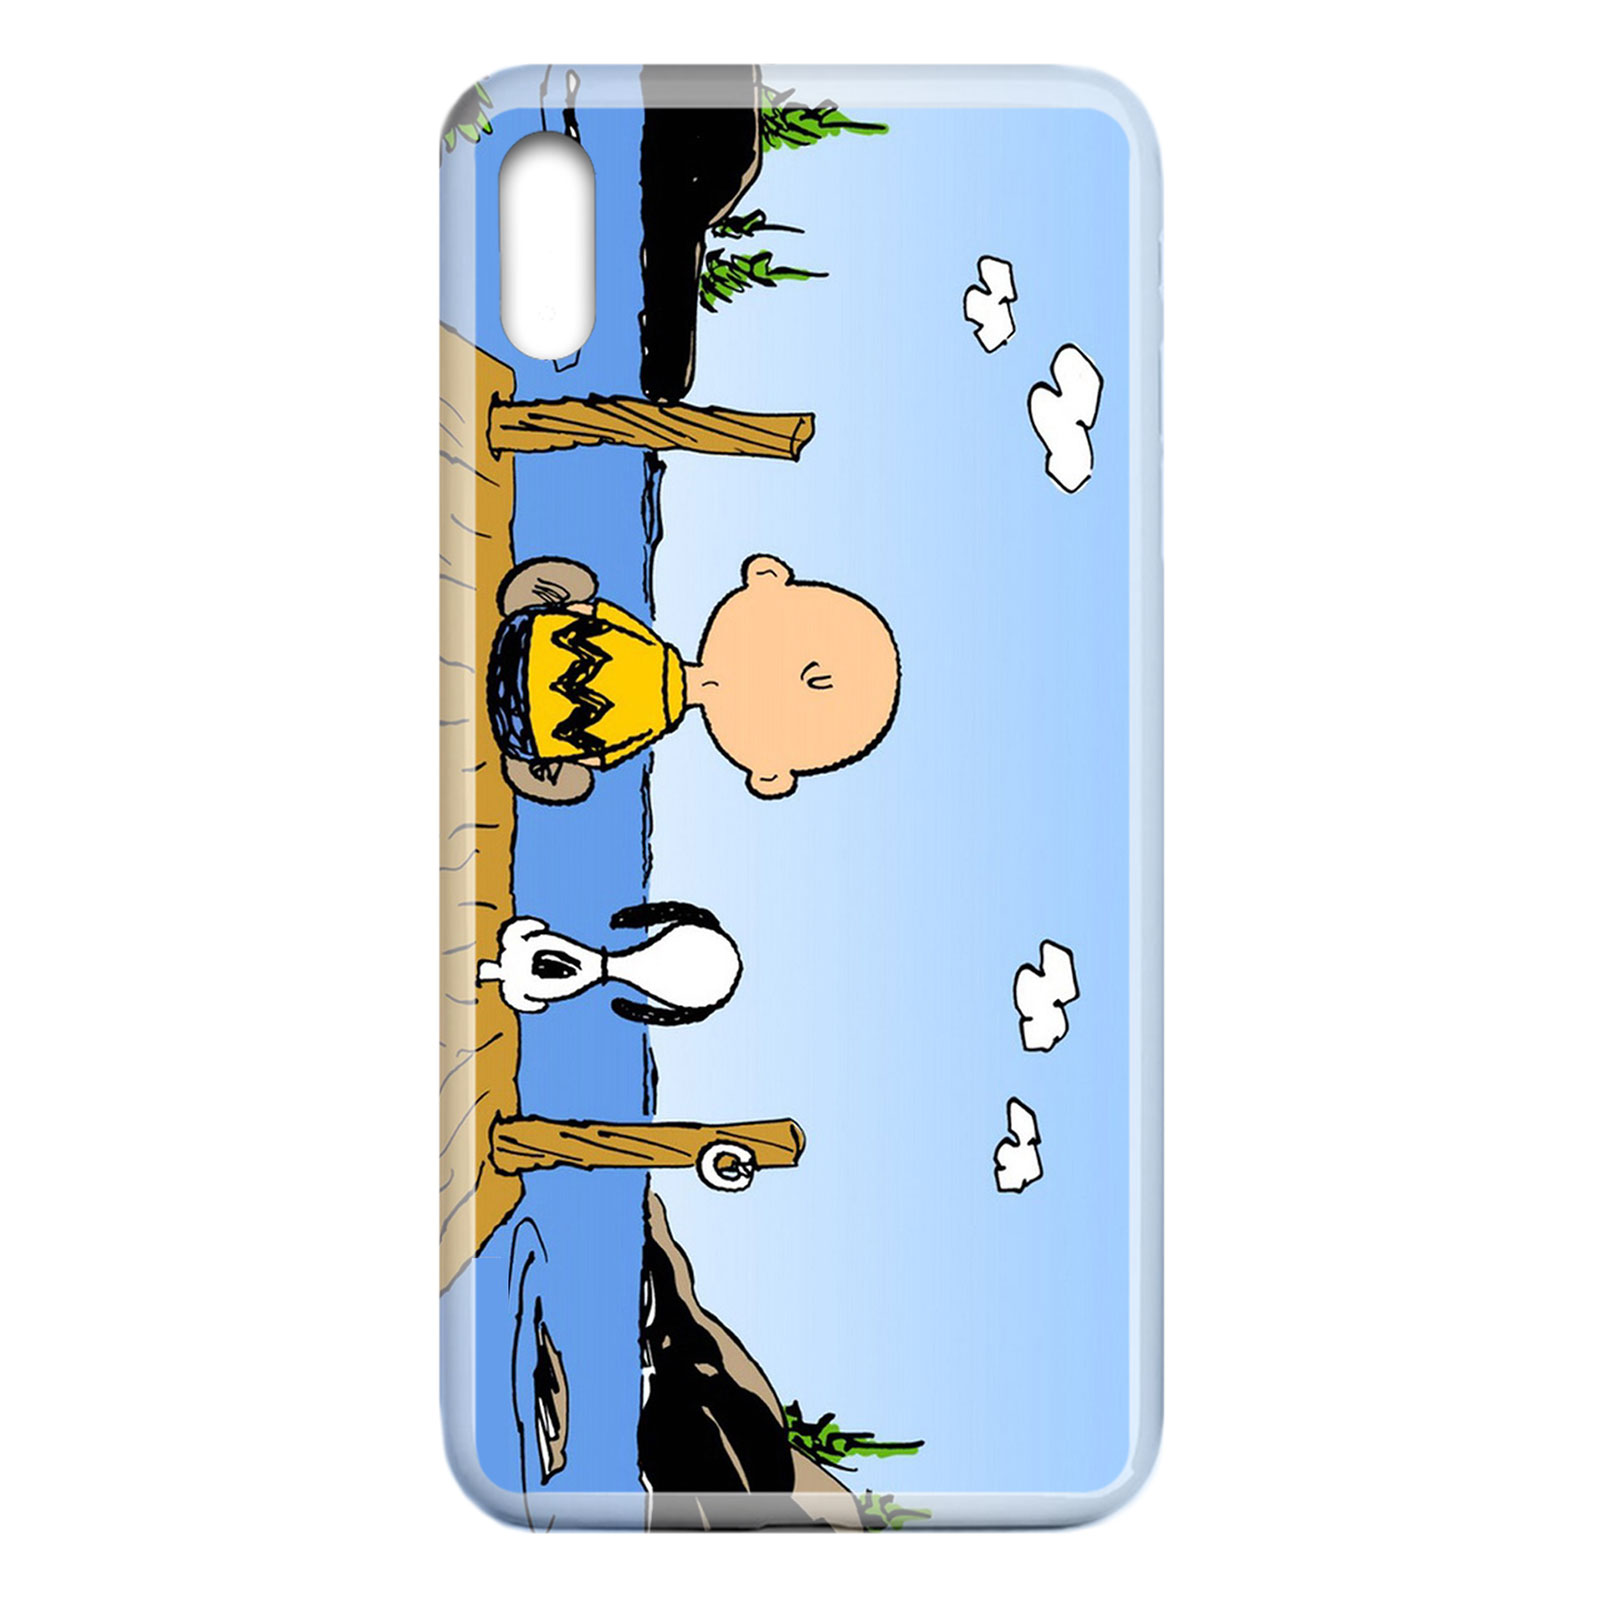 custodia iphone 6 plus snoopy